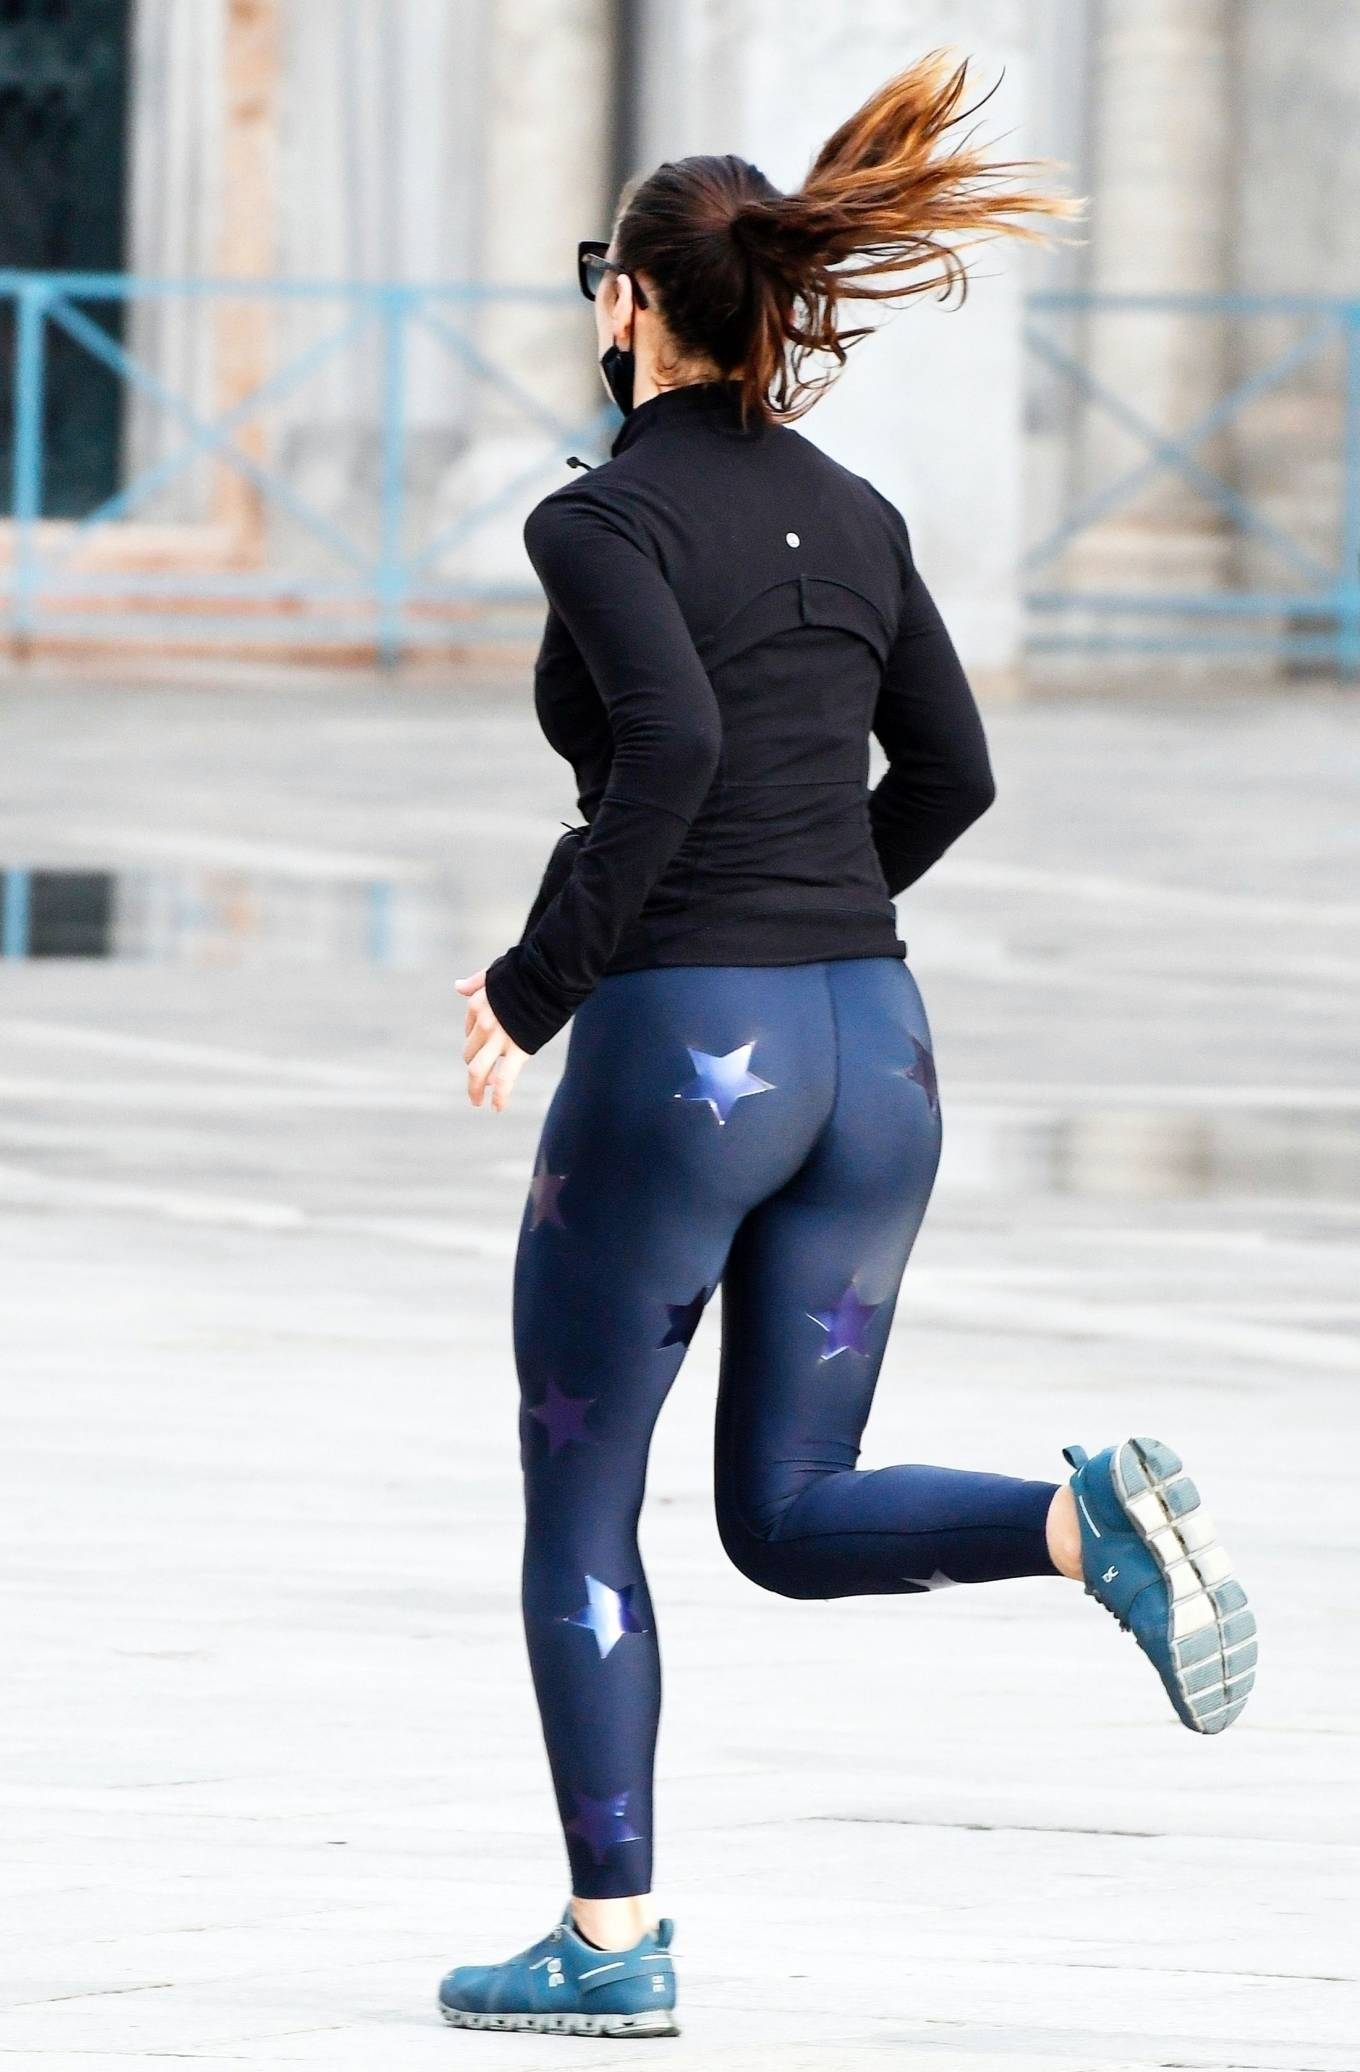 Hayley Atwell - Jogging candids on the streets of Venice